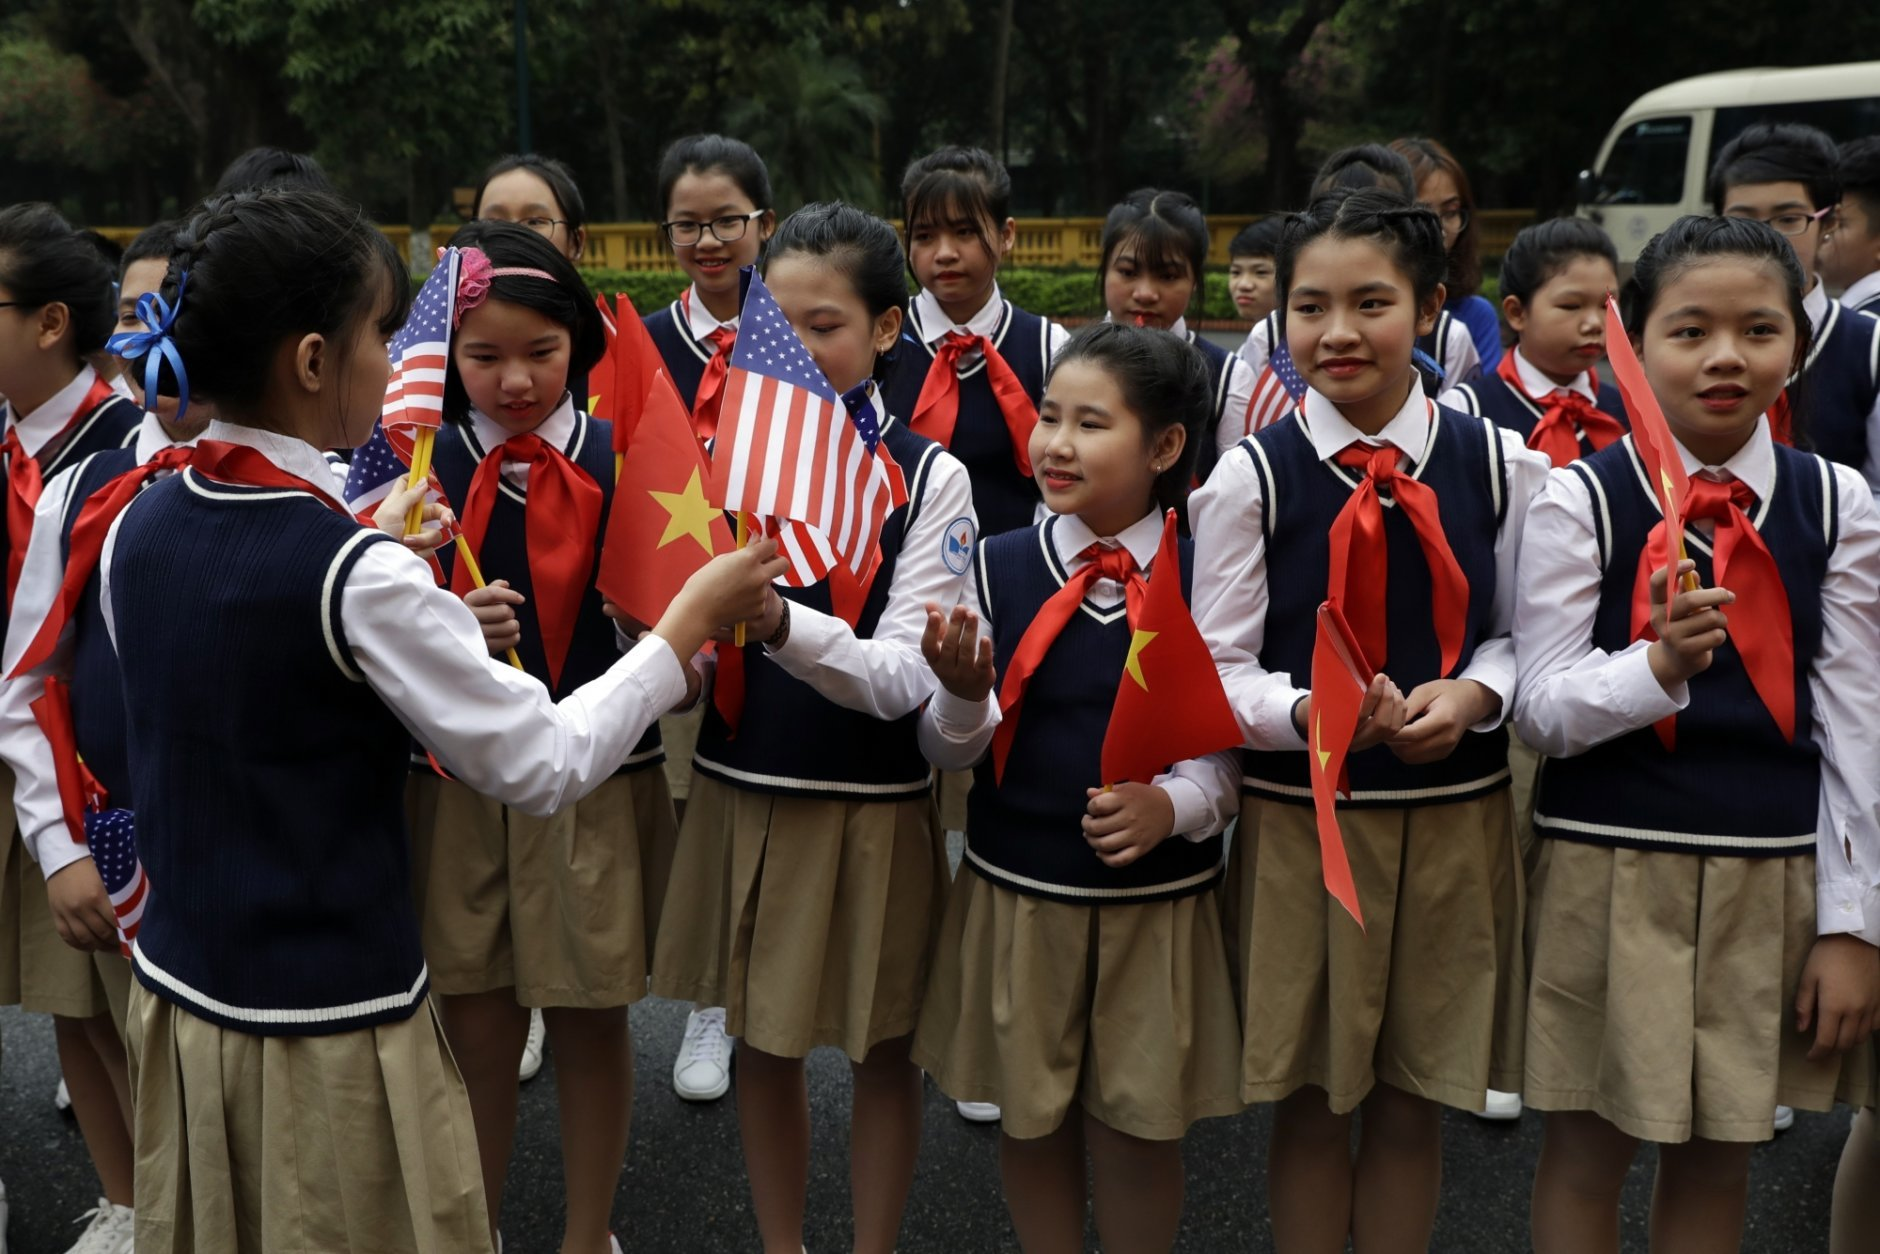 Children are handed American flags before U.S. President Donald Trump arrives to meet with Vietnamese President Nguyen Phu Trong at the Presidential Palace, Wednesday, Feb. 27, 2019, in Hanoi. (AP Photo/Evan Vucci)